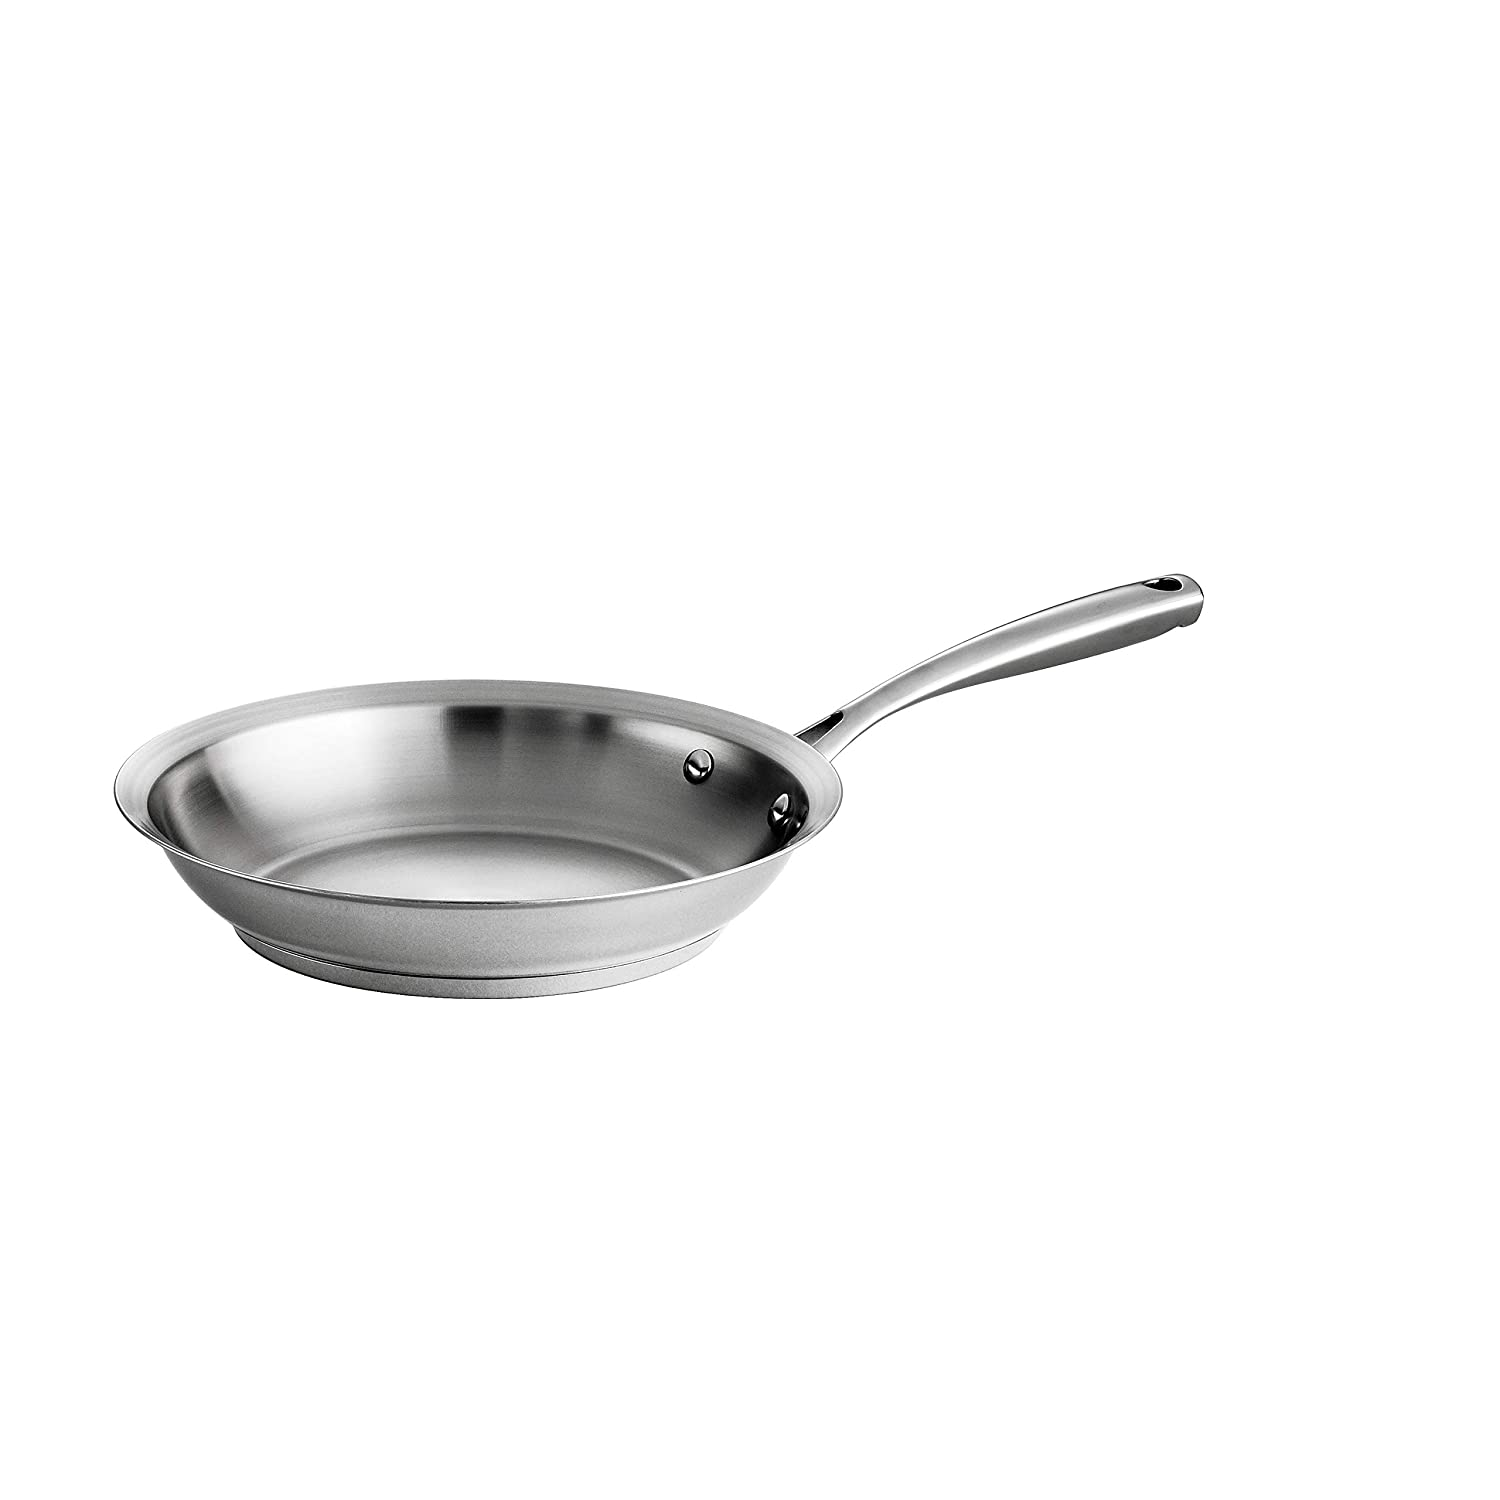 Tramontina 80101/020DS Gourmet Prima Stainless Steel, Induction-Ready, Impact Bonded, Tri-Ply Base Fry Pan, 10 inch, Made in Brazil